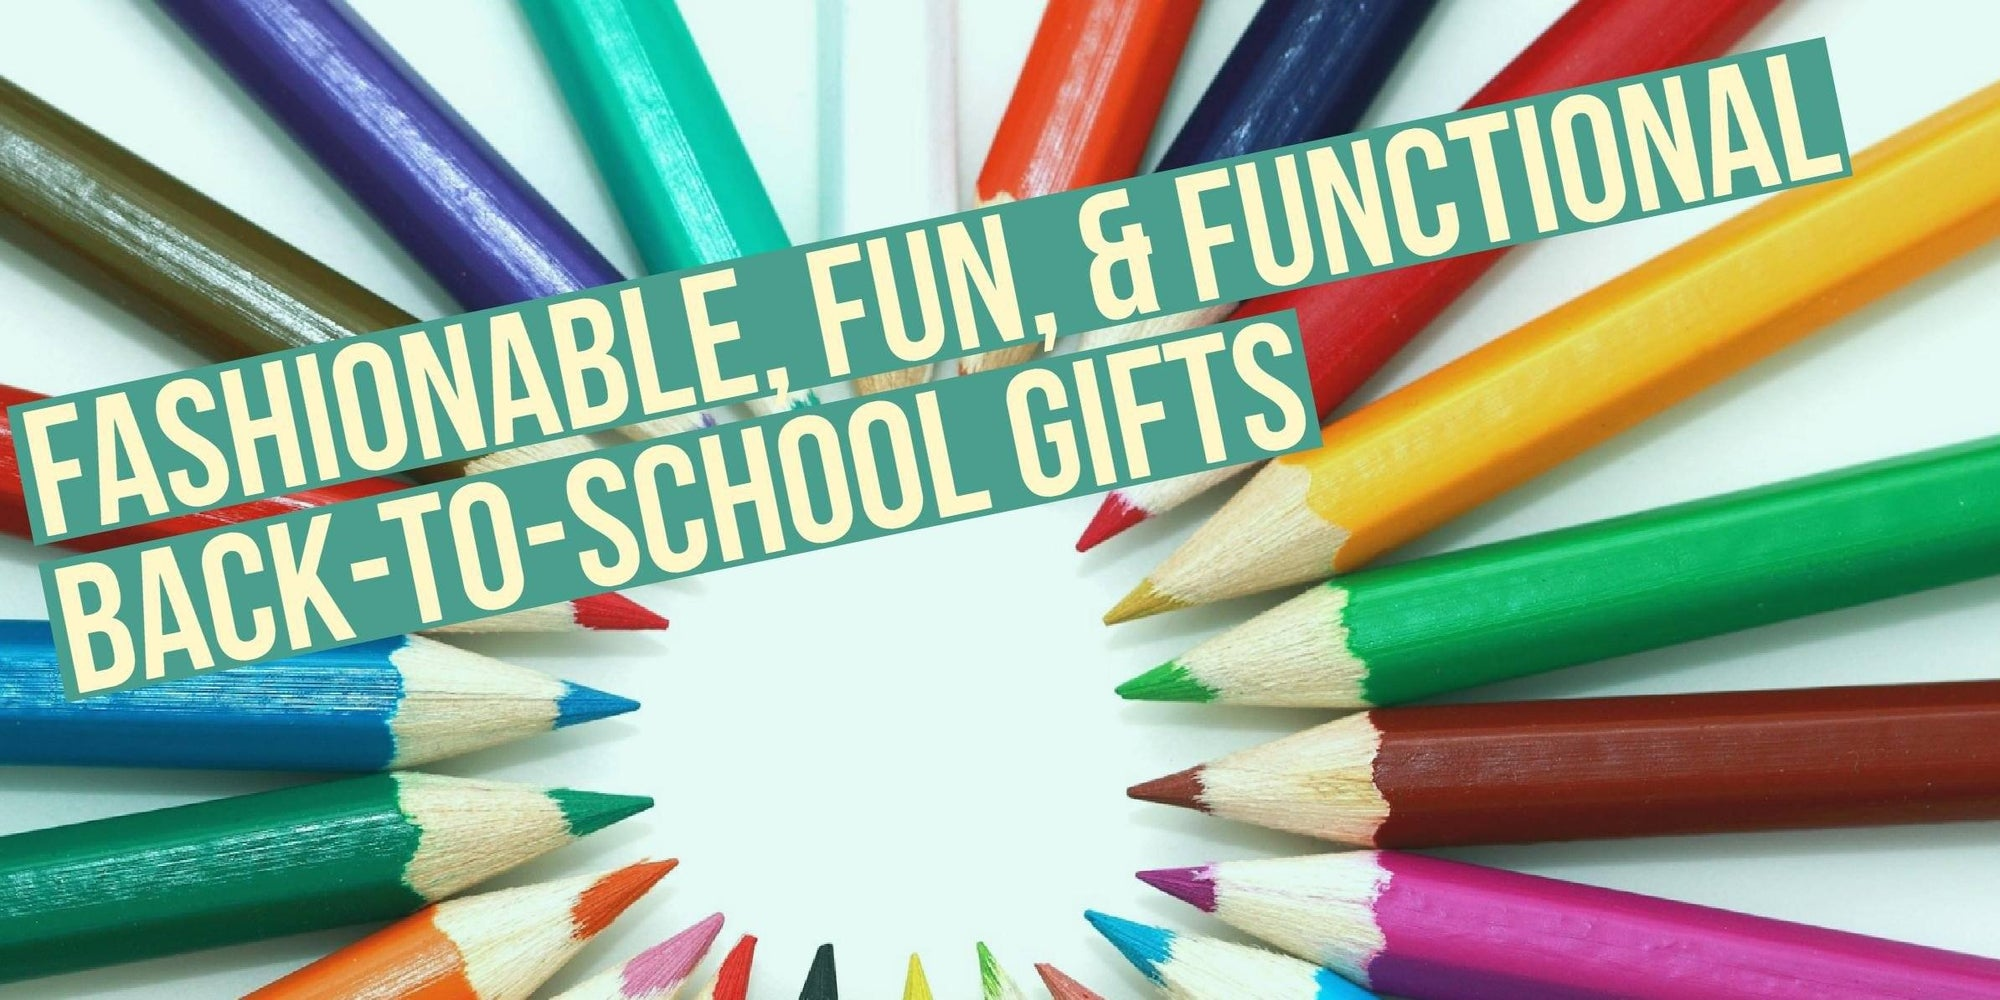 Fashionable, Fun, & Functional Back-to-School Gifts